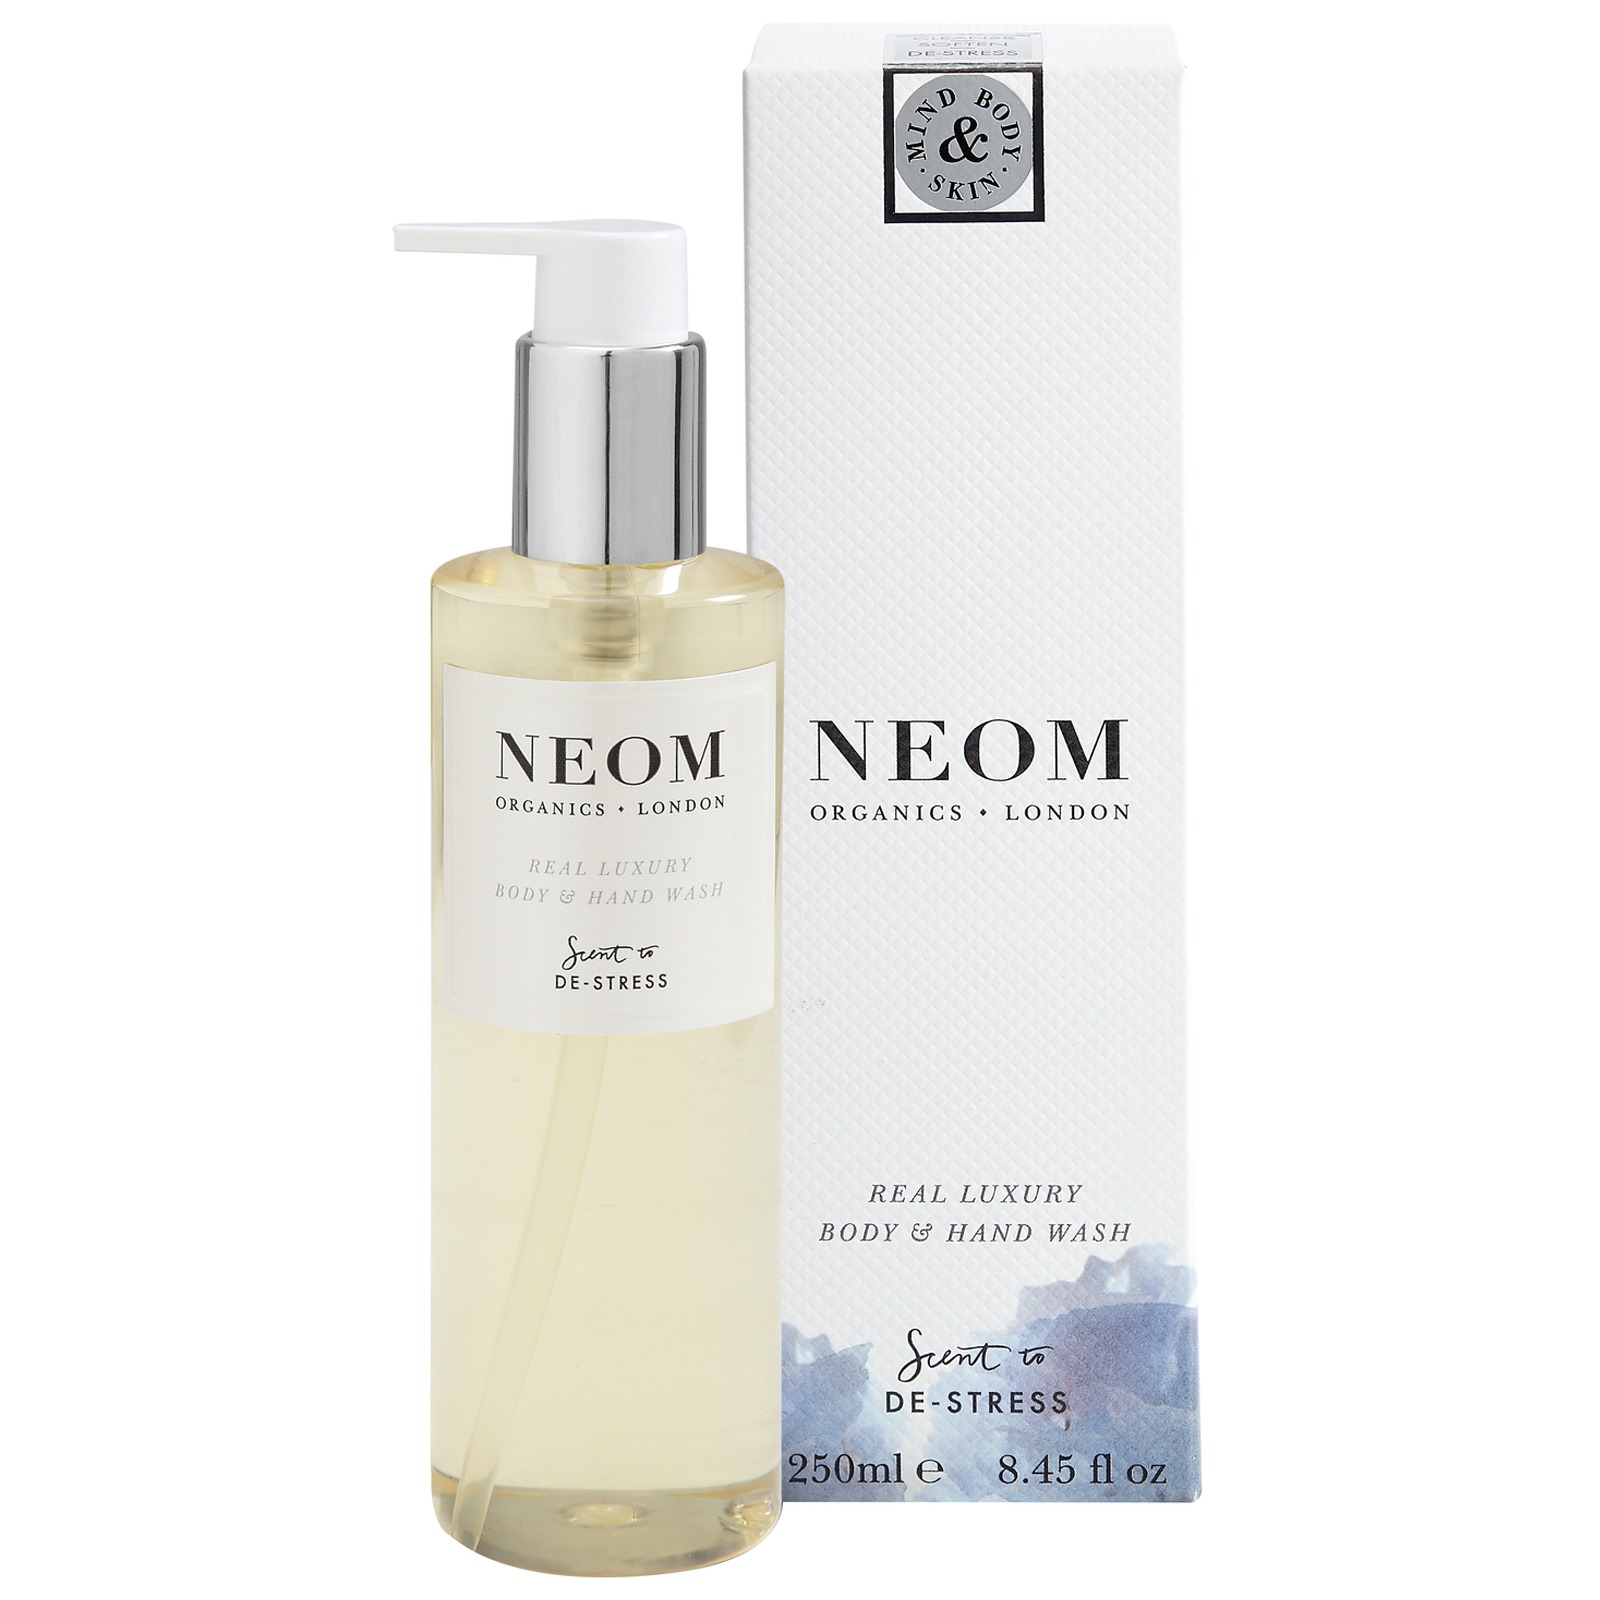 Neom Organics London Scent To De-Stress Real Luxury Body & Hand Wash 250ml